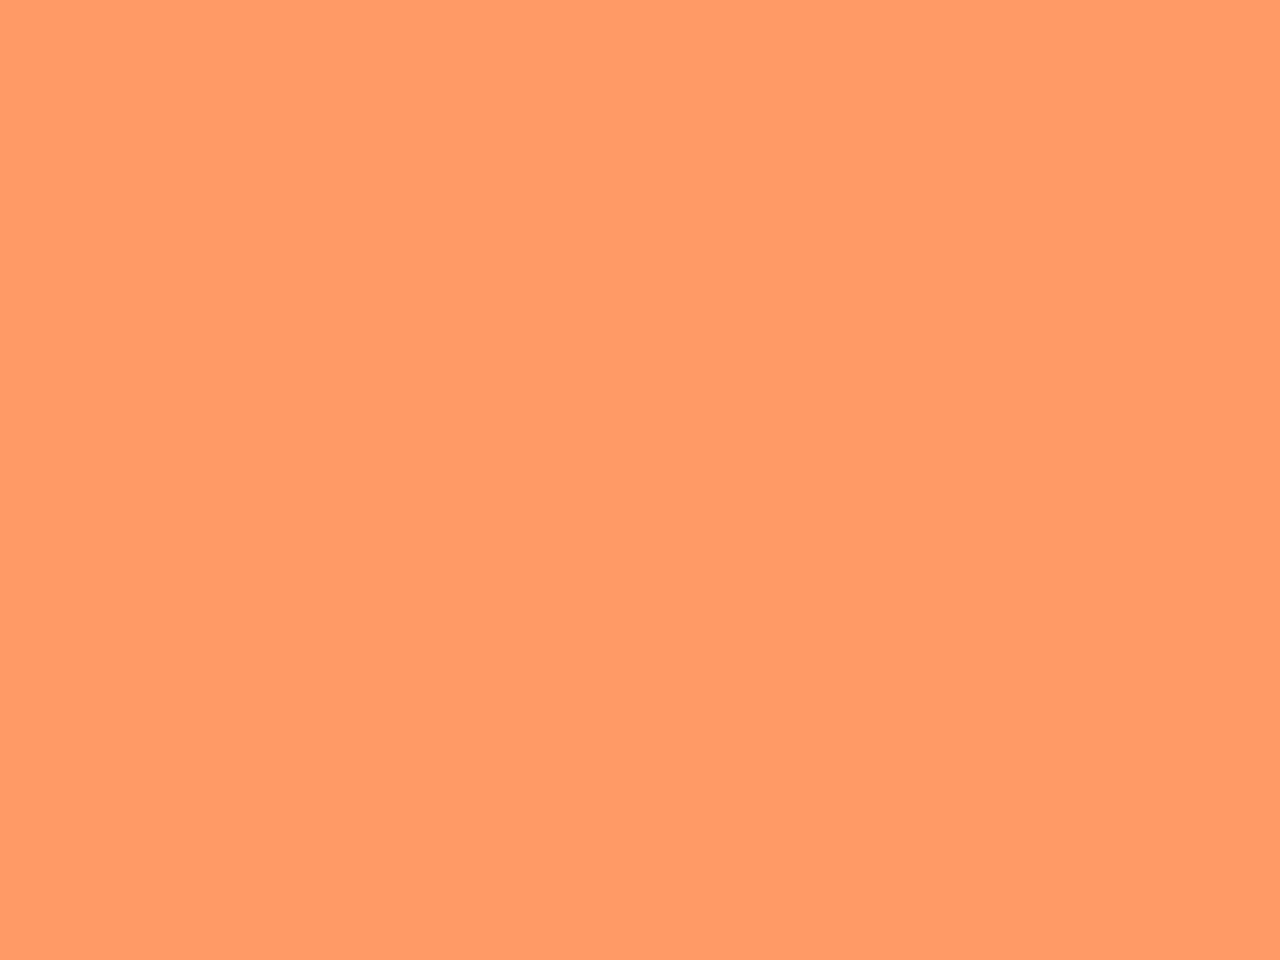 1280x960 Atomic Tangerine Solid Color Background